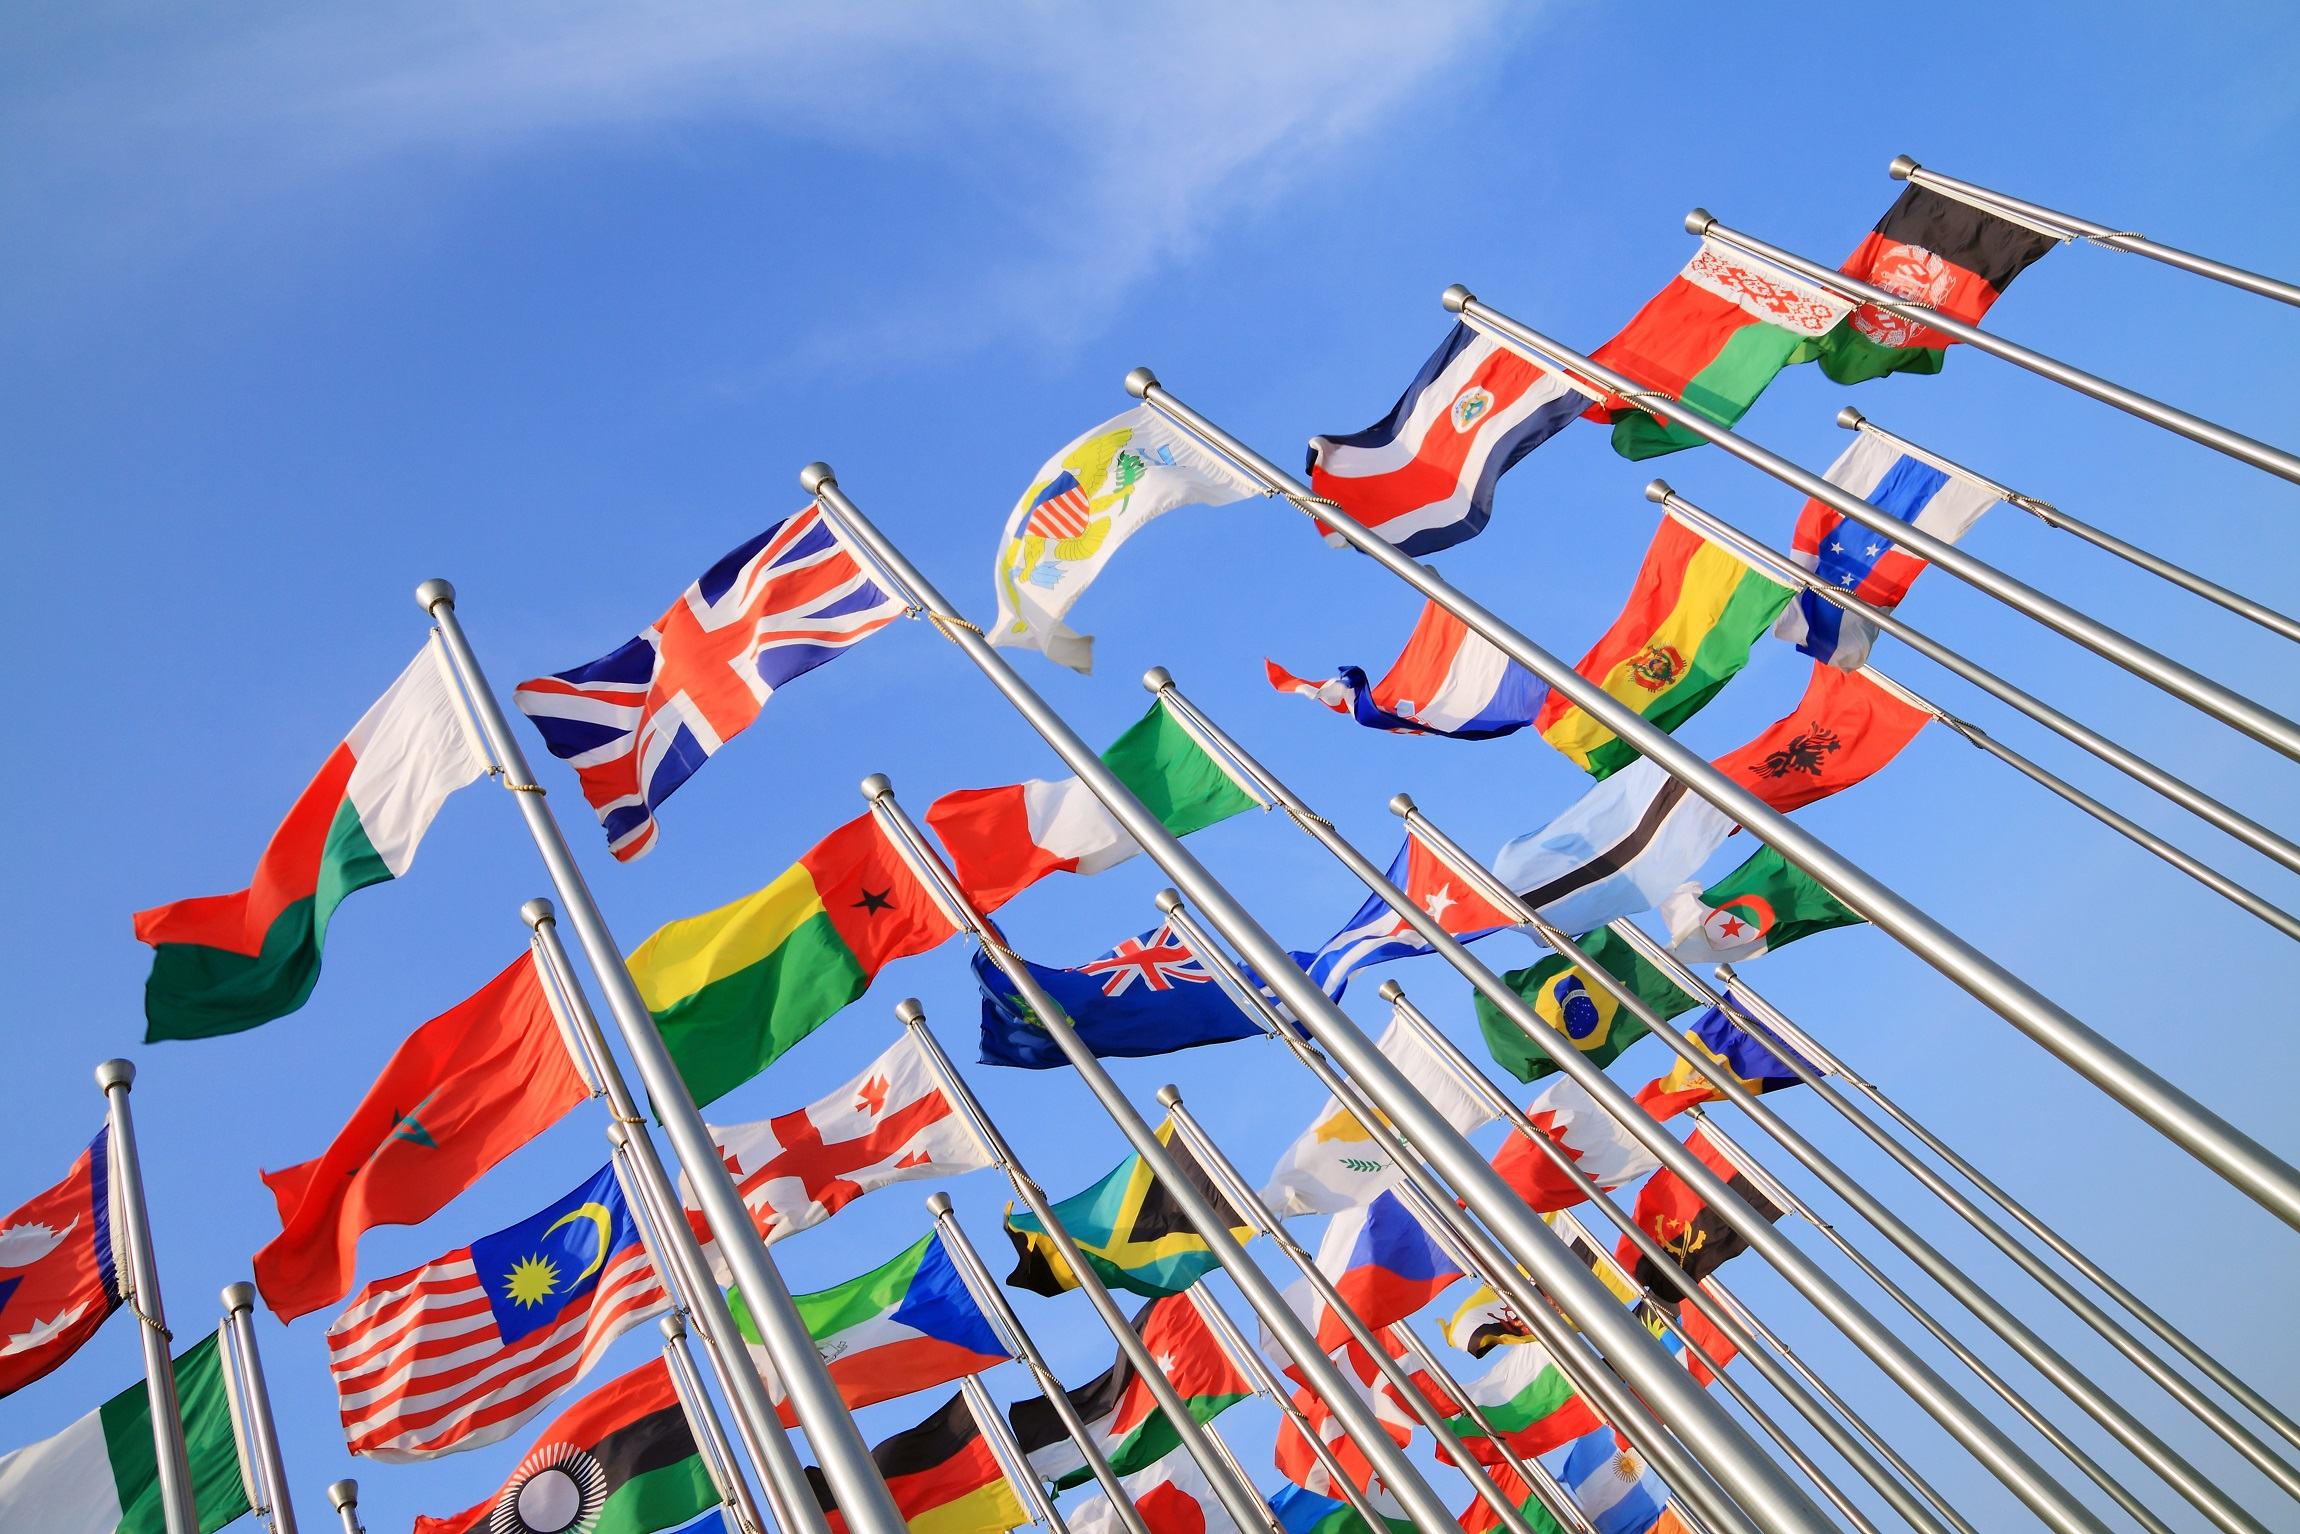 Flags- Images by Thinkstock